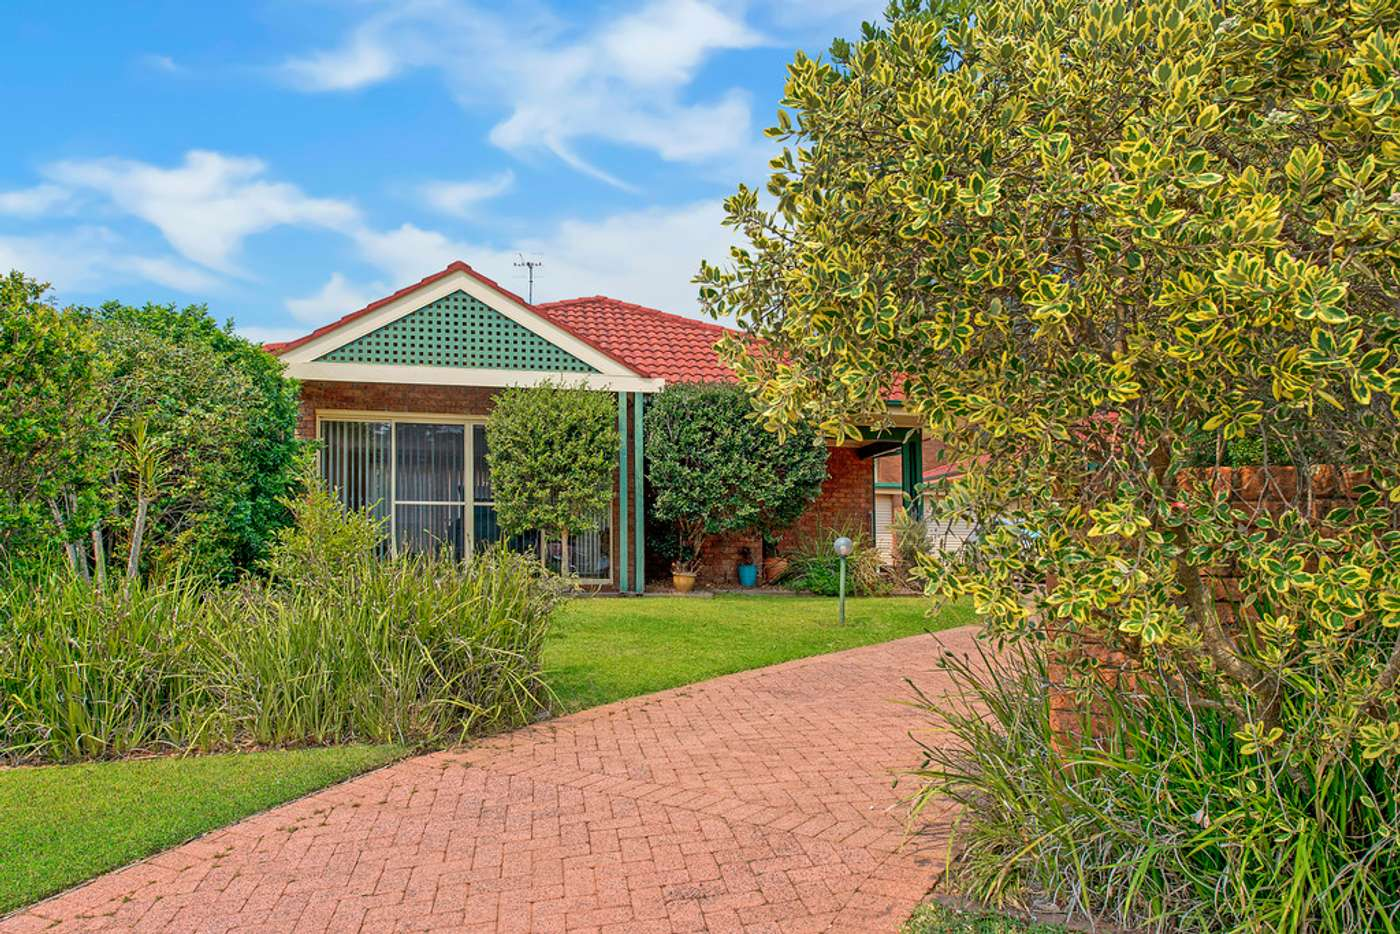 Fifth view of Homely villa listing, 1/14 Blackbutt Crescent, Laurieton NSW 2443